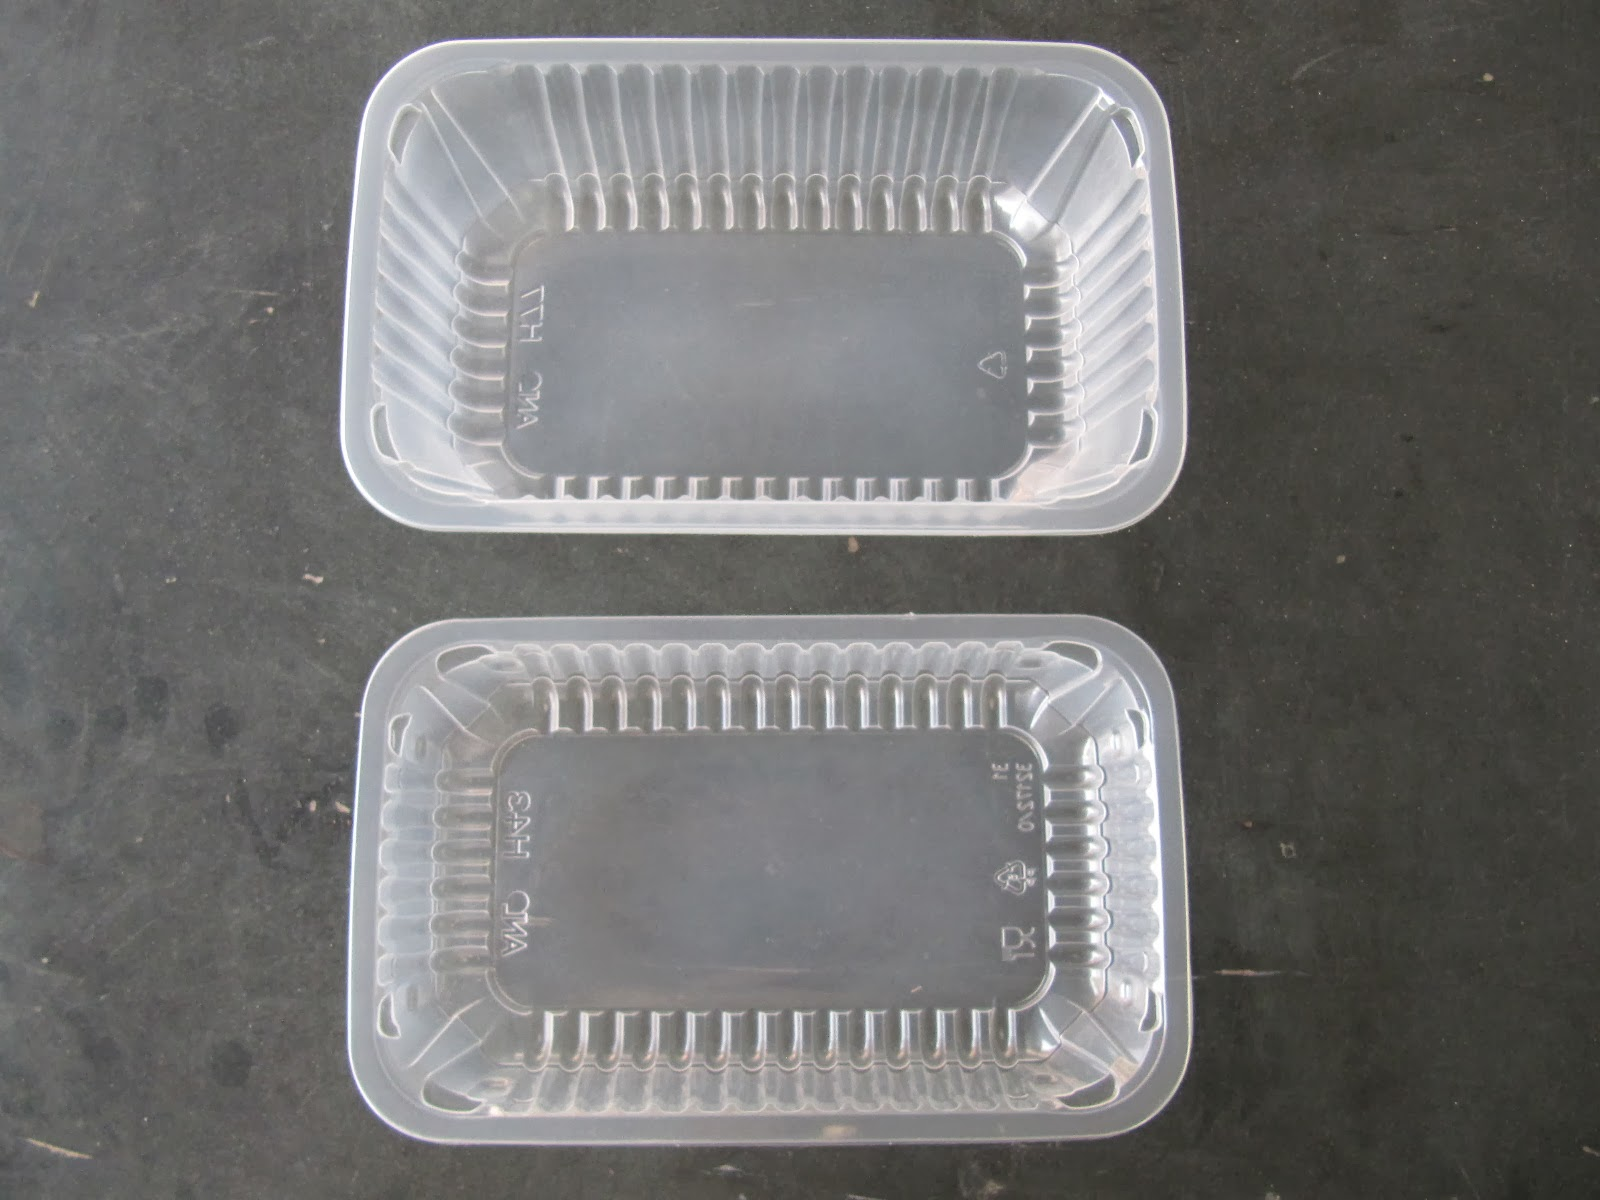 Plastic trays for food